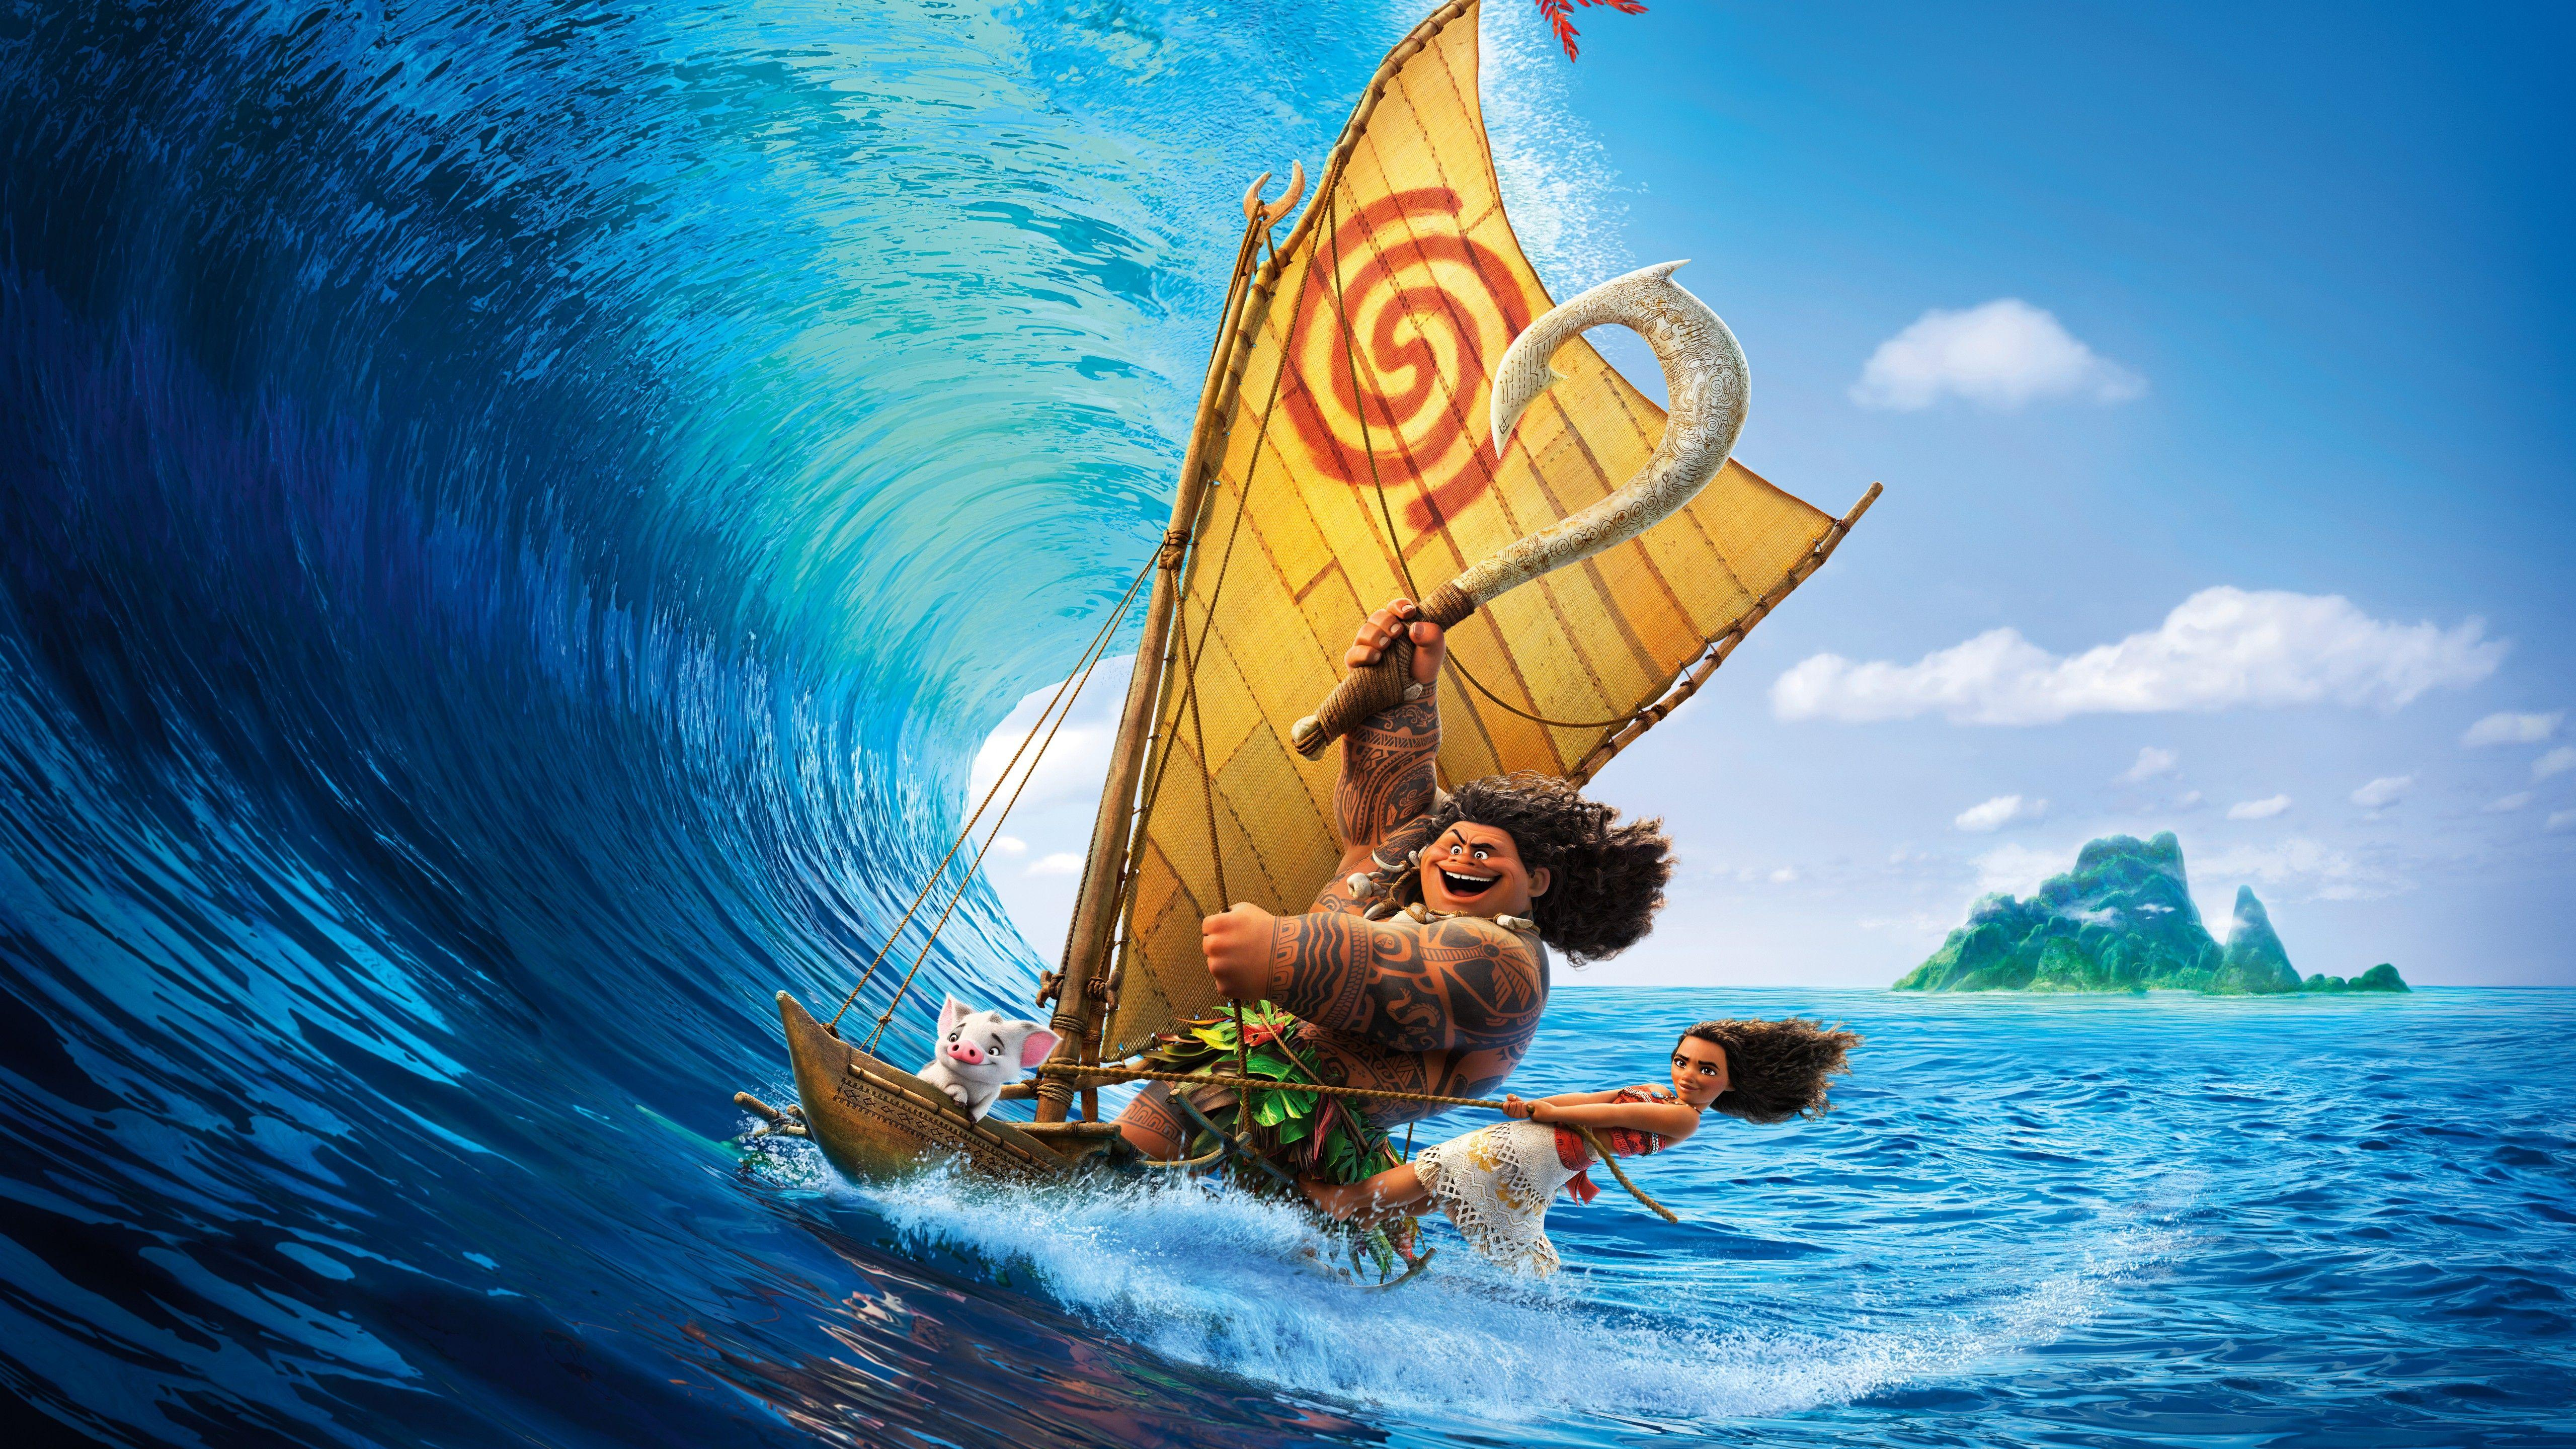 Wallpaper Moana, Disney, Animation, HD, 8K, Movies, #3781